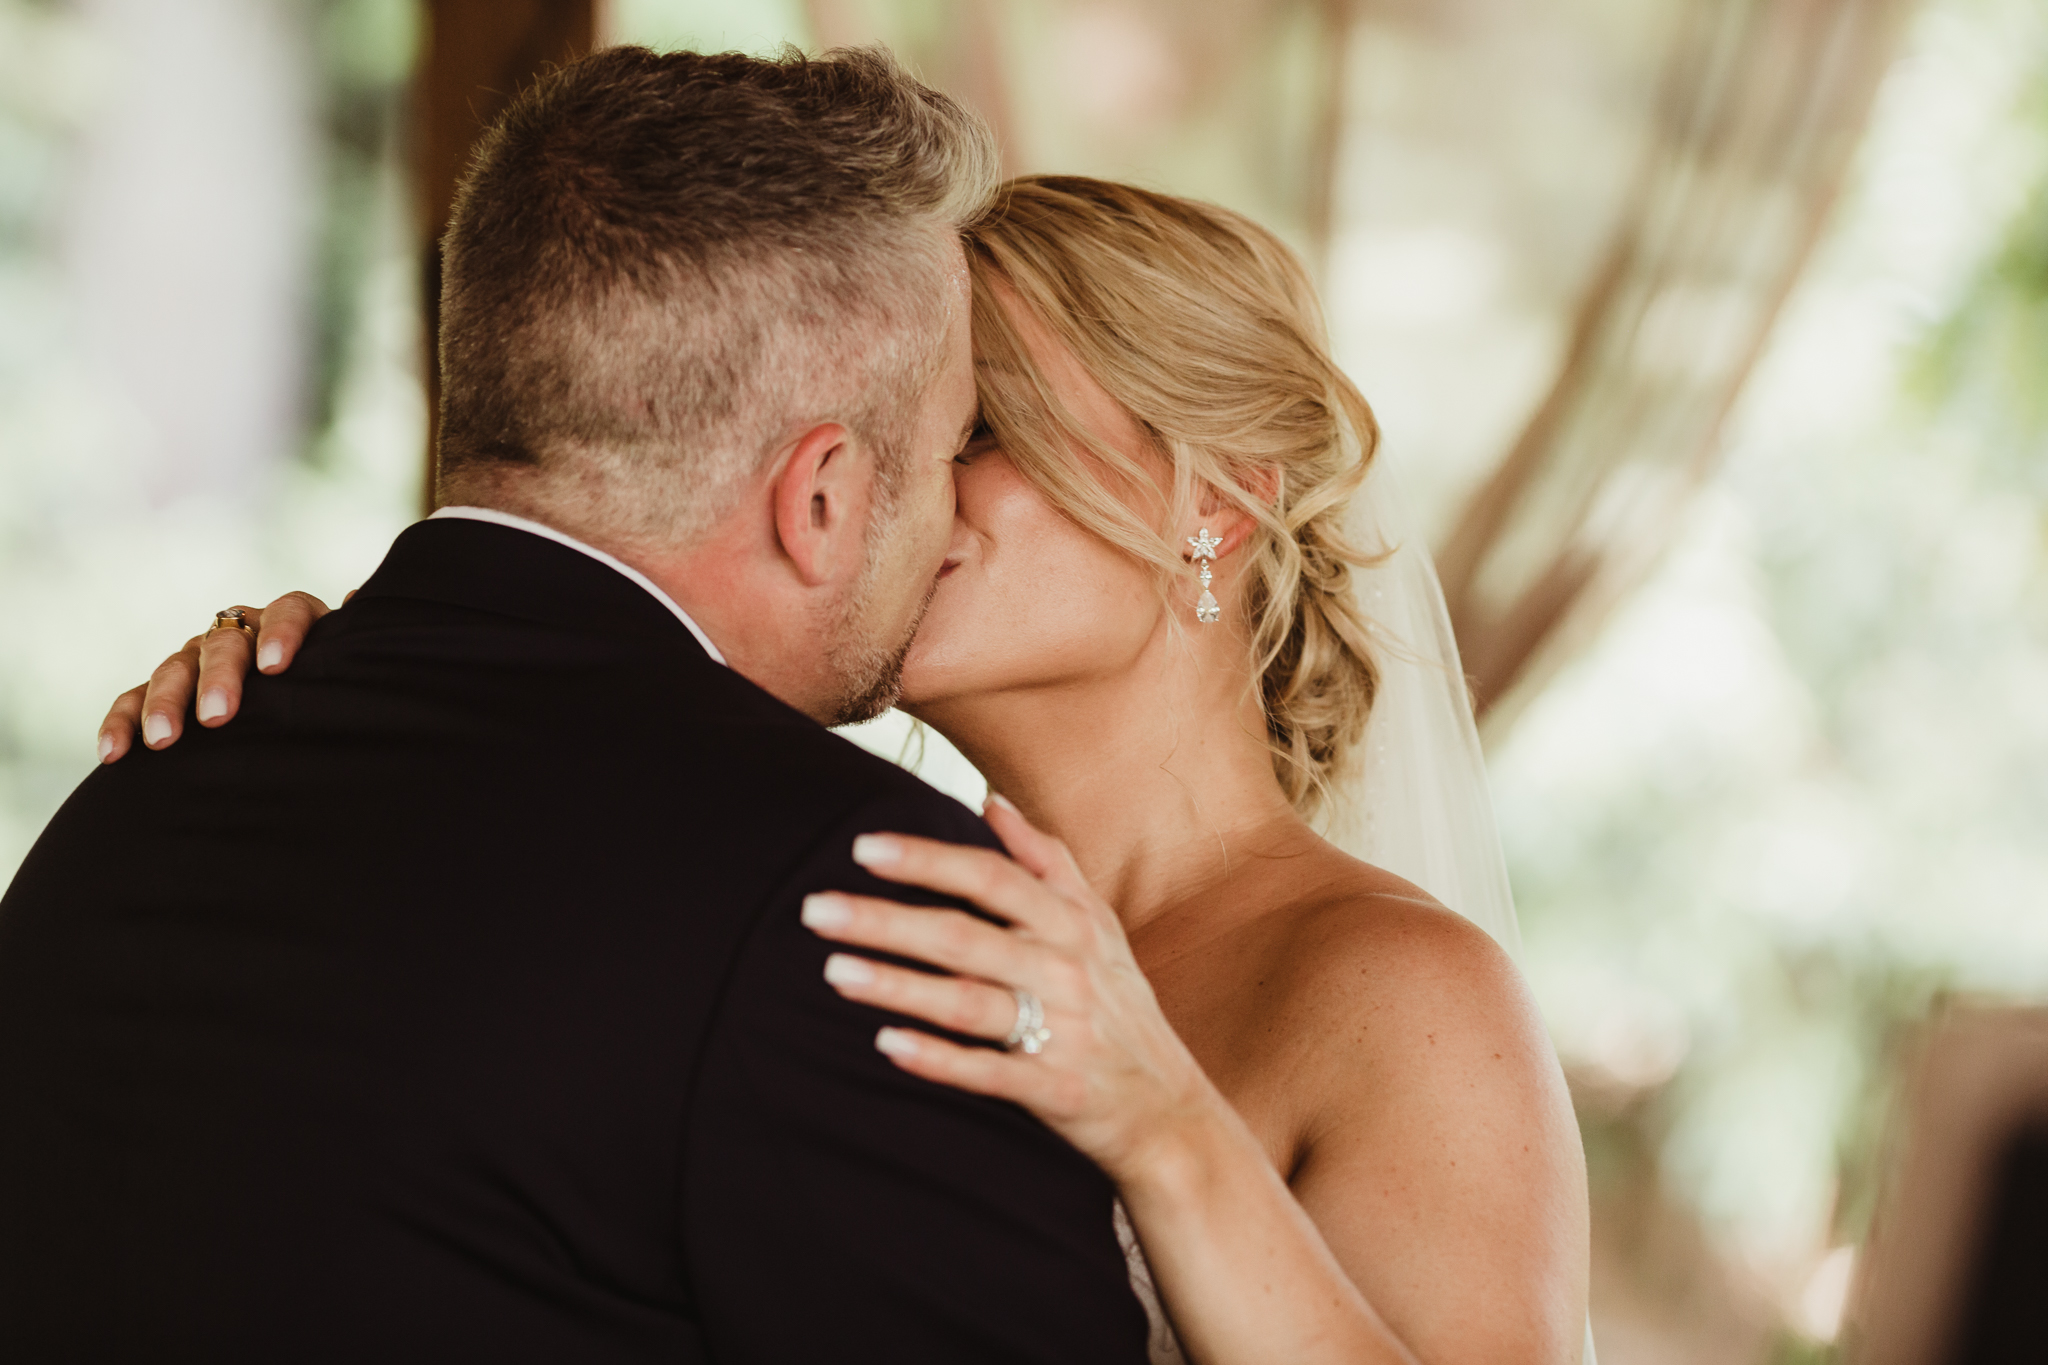 prettyplacewedding_jennichandlerphotography-230.jpg